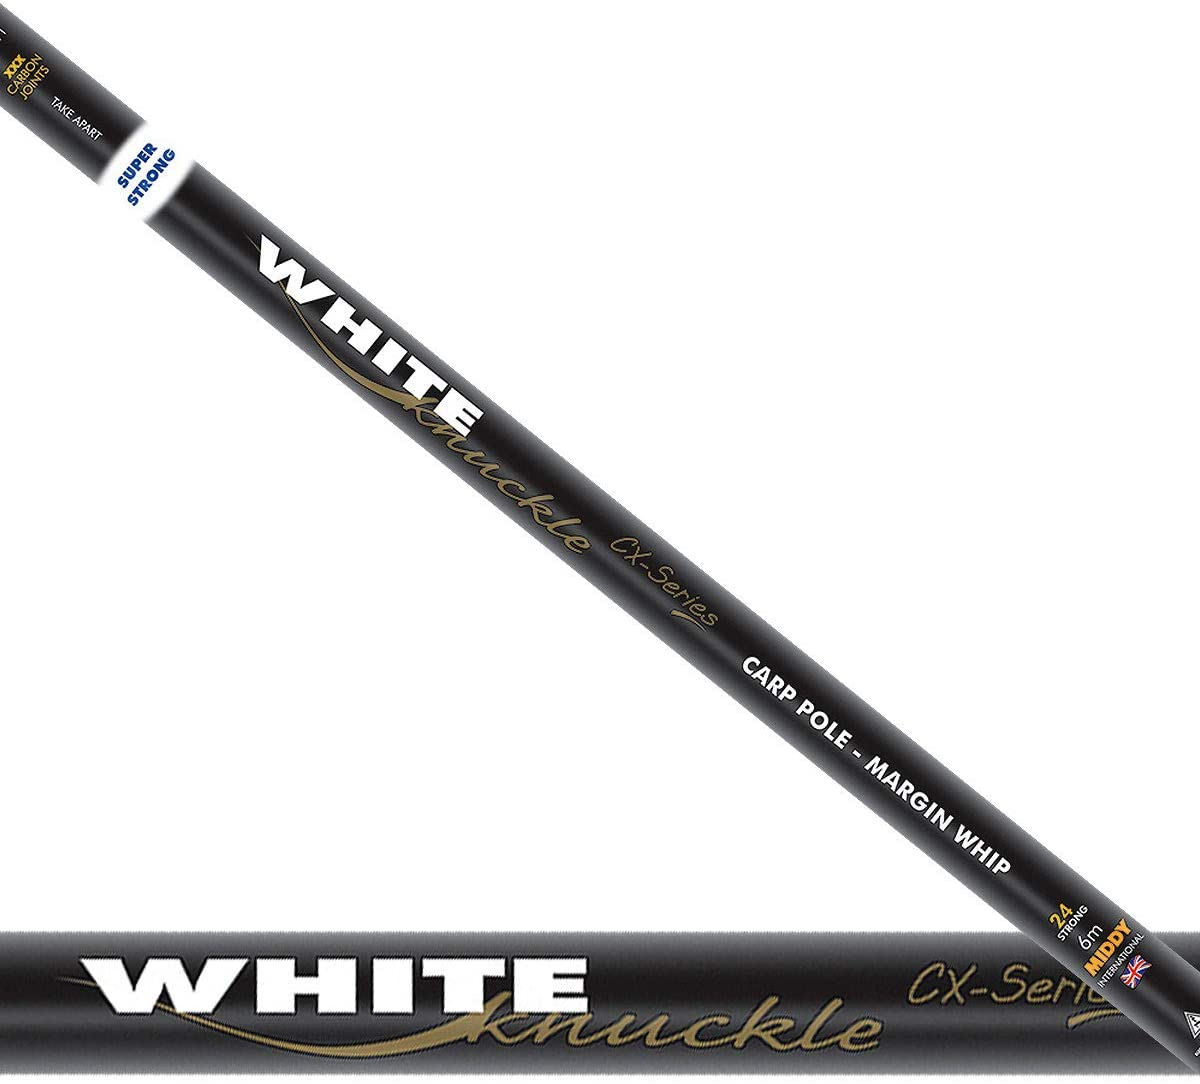 Middy White Knuckle CX Series Margin Pole